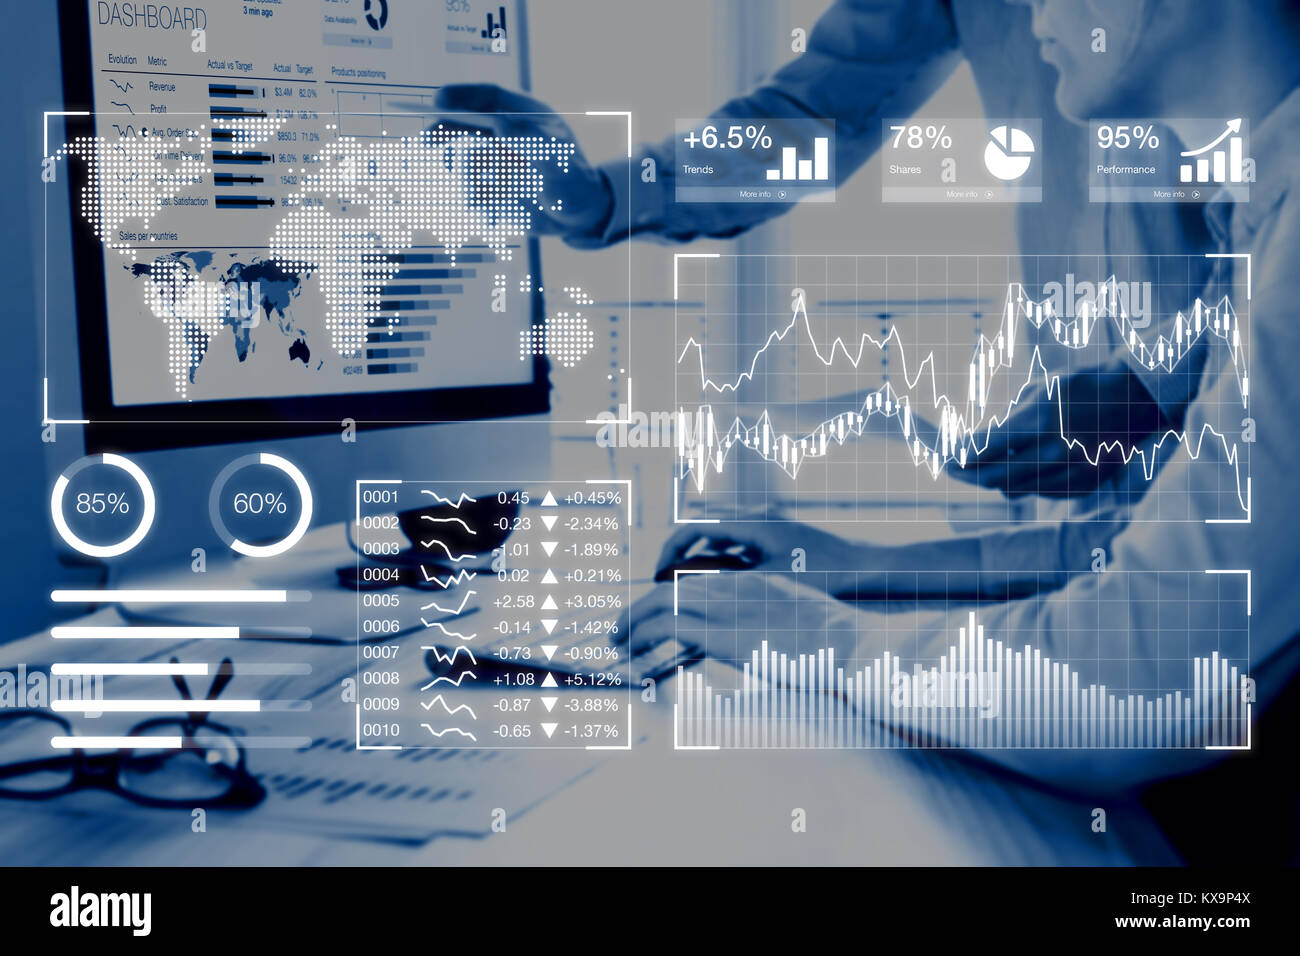 Business analytics dashboard reporting concept with key performance indicators (KPI) and two people analyzing sales - Stock Image